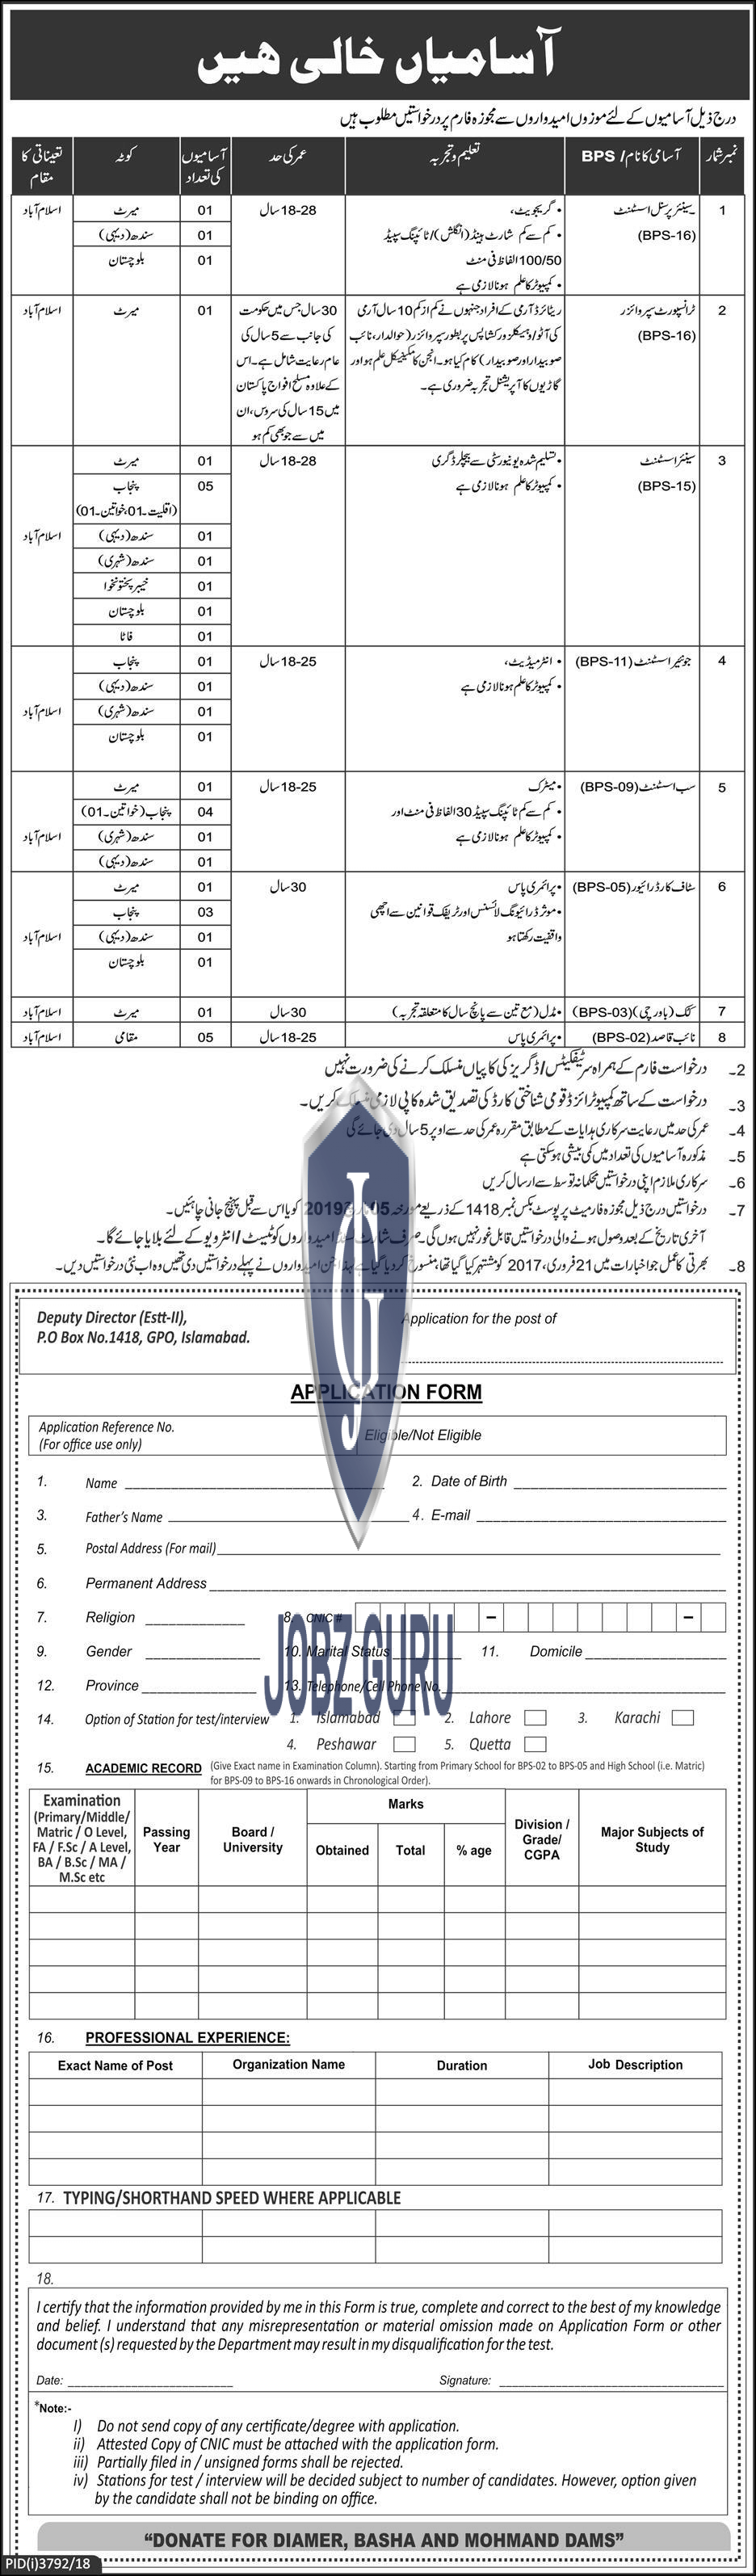 P.O Box No 1418 GPO Islamabad Jobs 2019 All over Pakistan